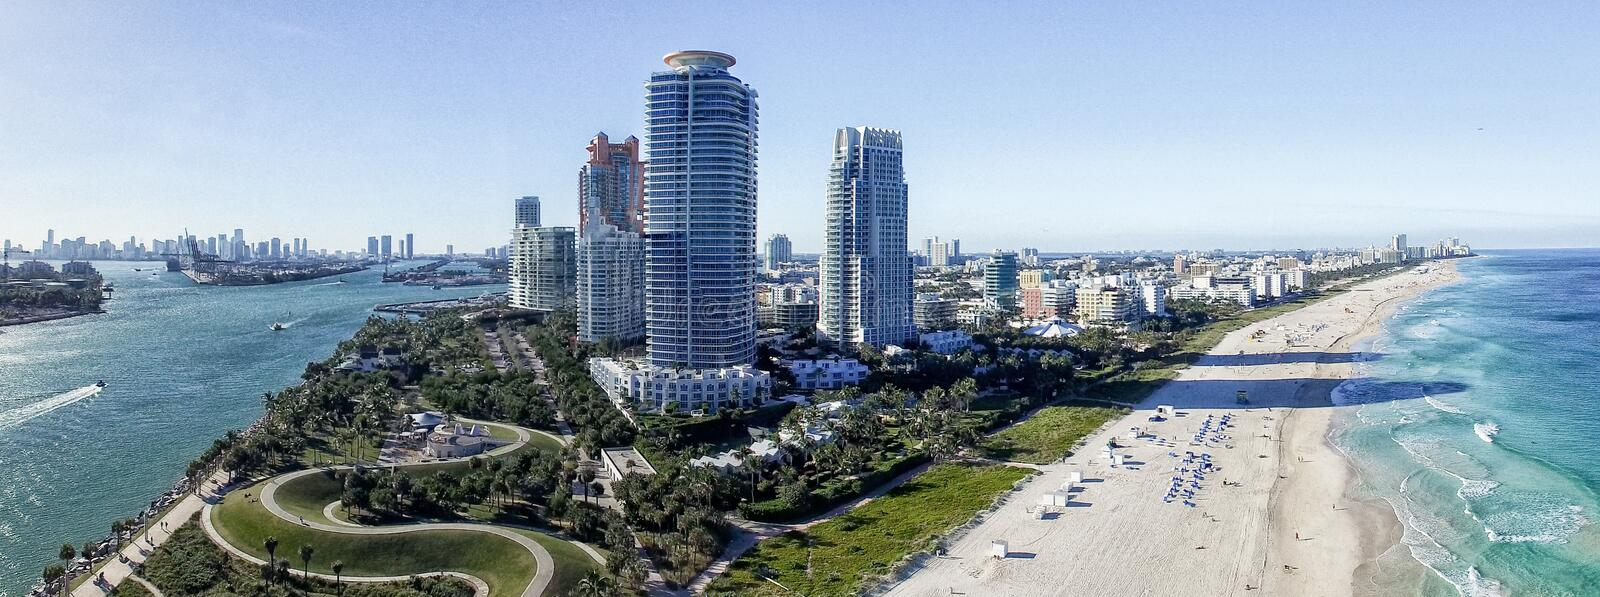 South Pointe buildings and coast, Miami form the air royalty free stock image